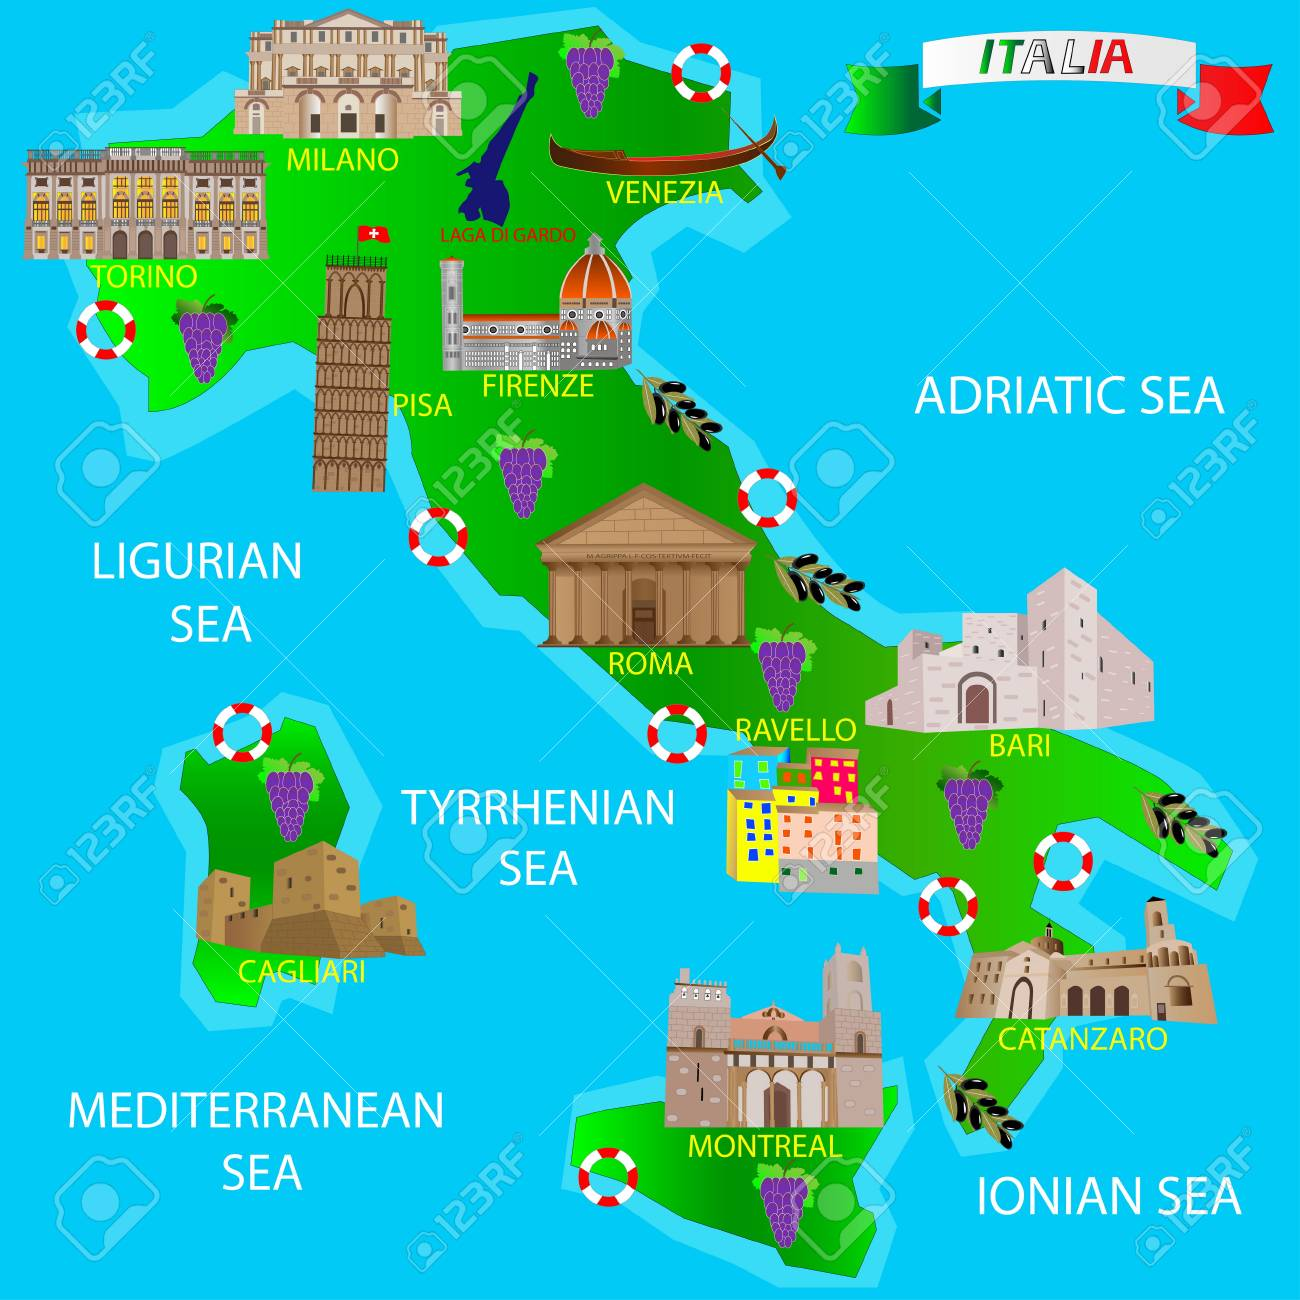 Map Of Italy For Tourists.Map Of Italy For Tourists Architectural Monuments